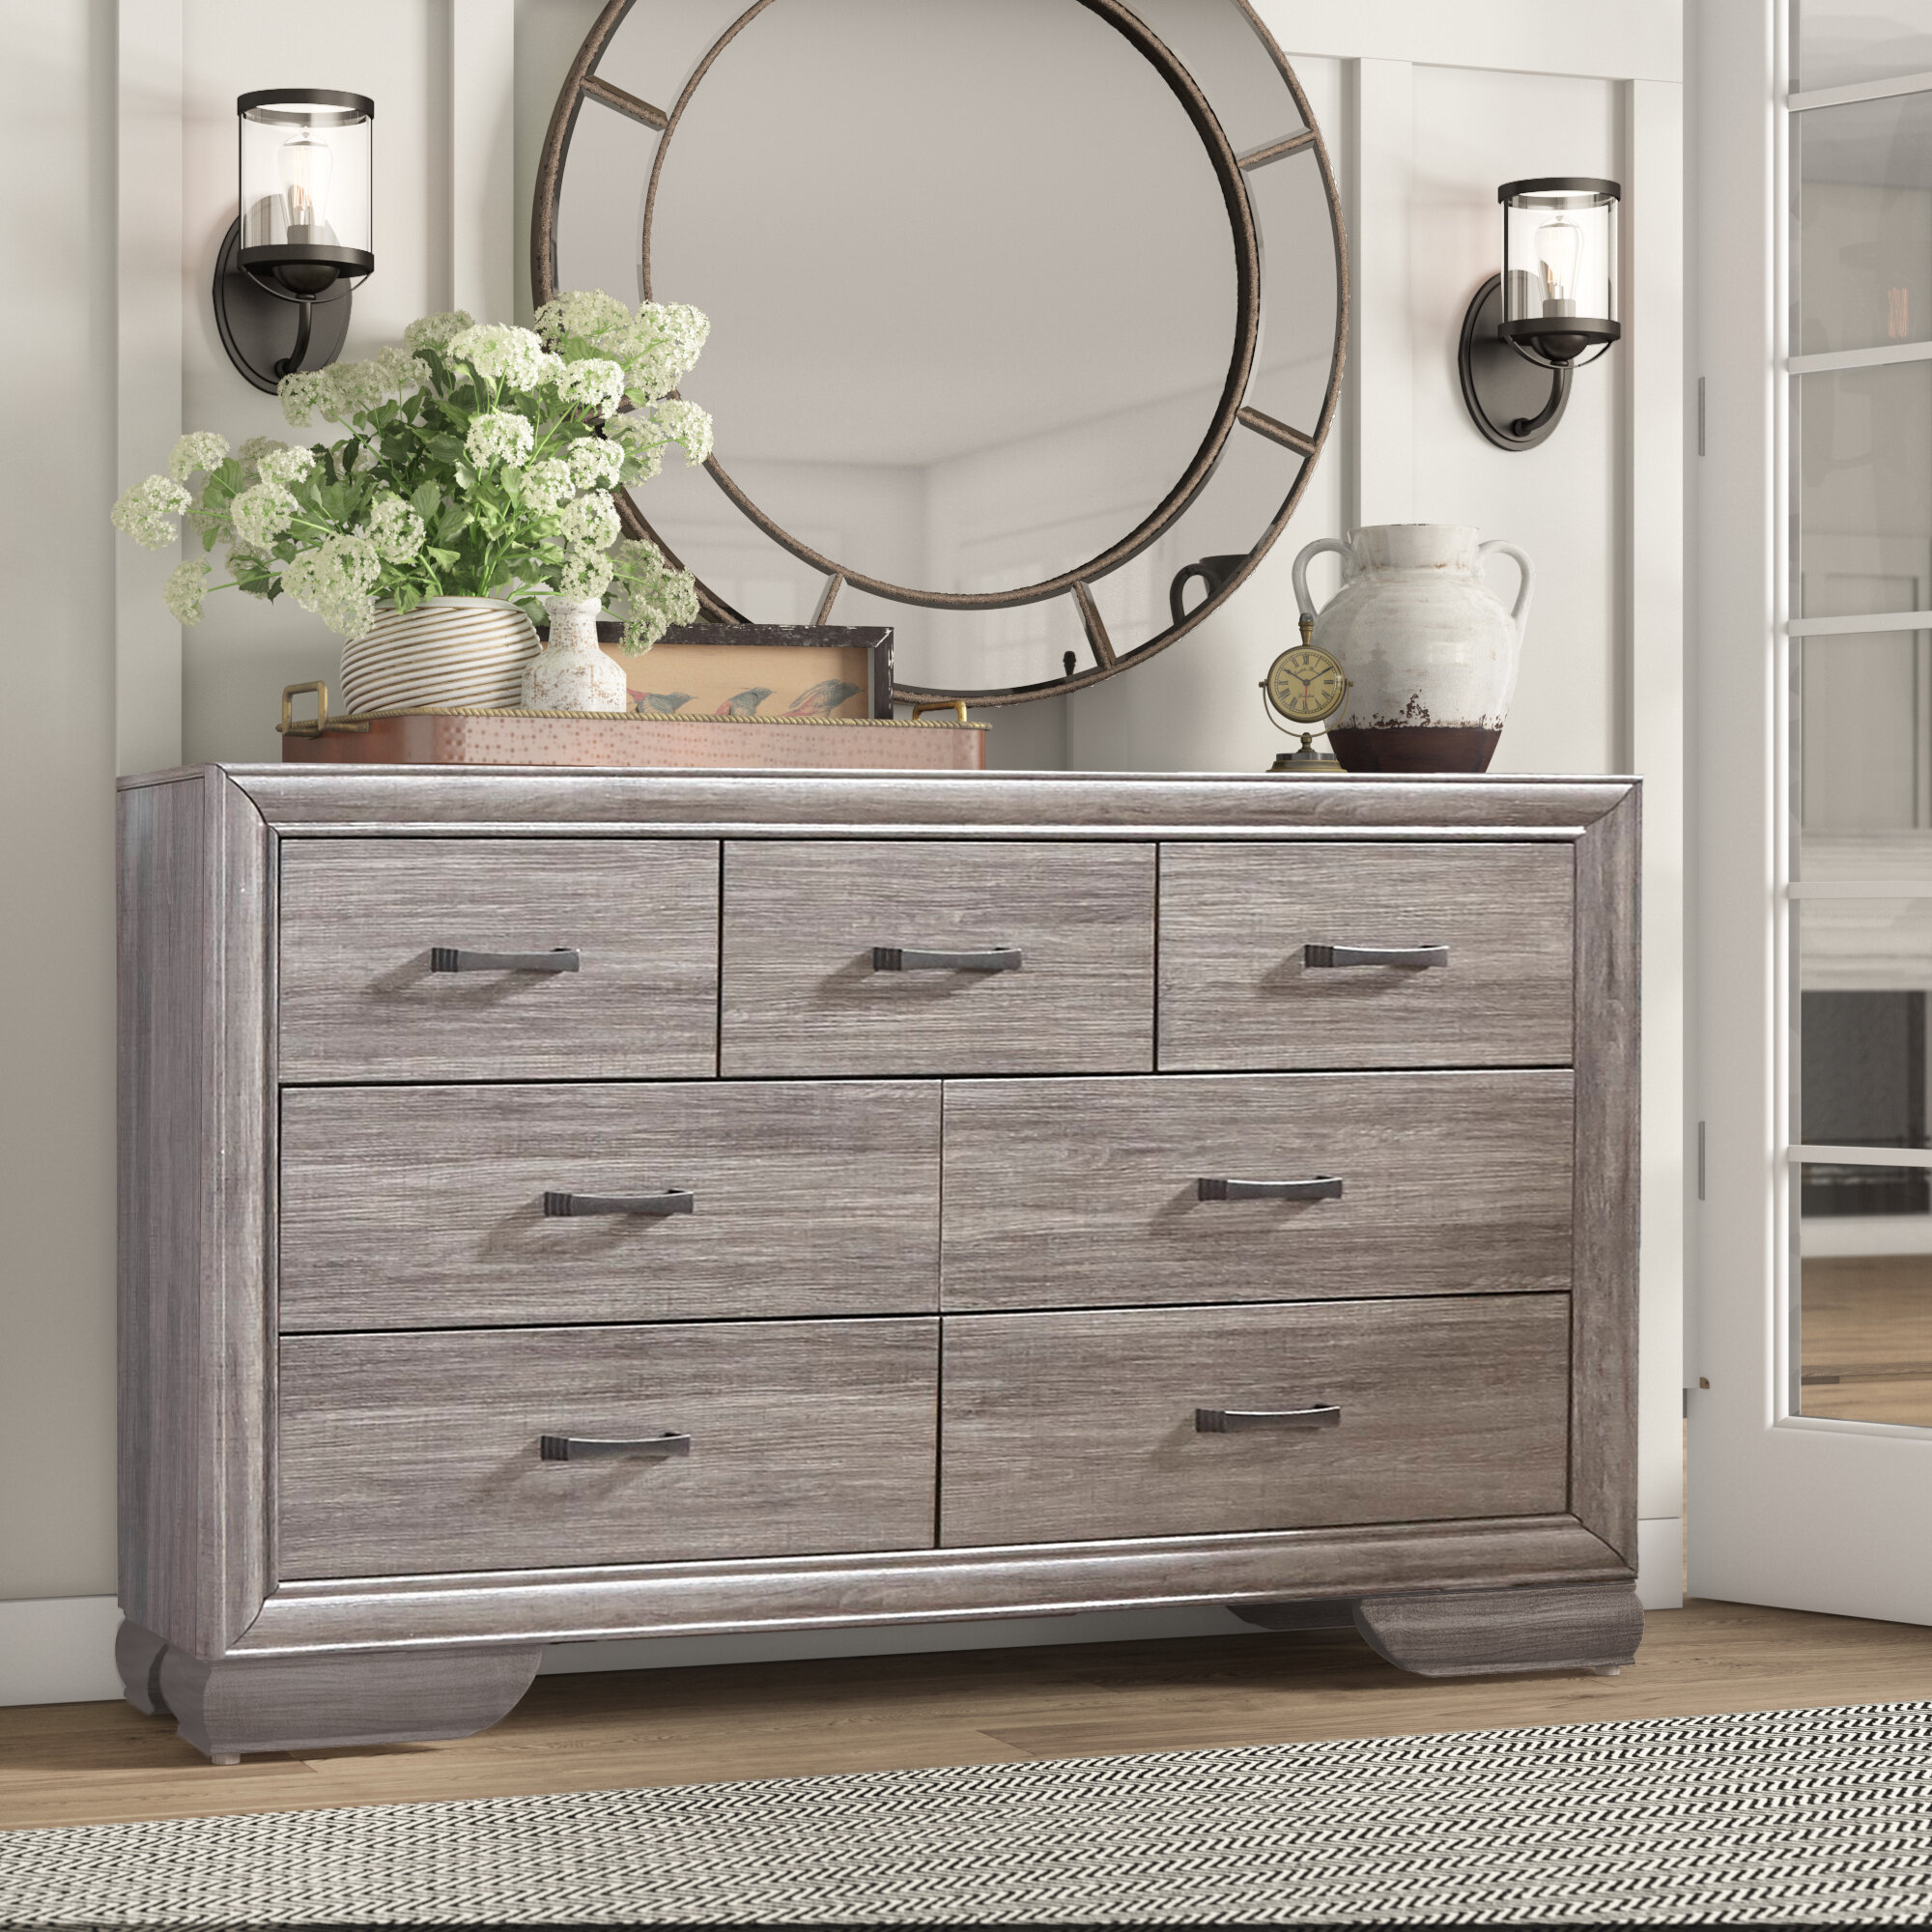 Wood Ophelia Co Dressers Chests You Ll Love In 2021 Wayfair